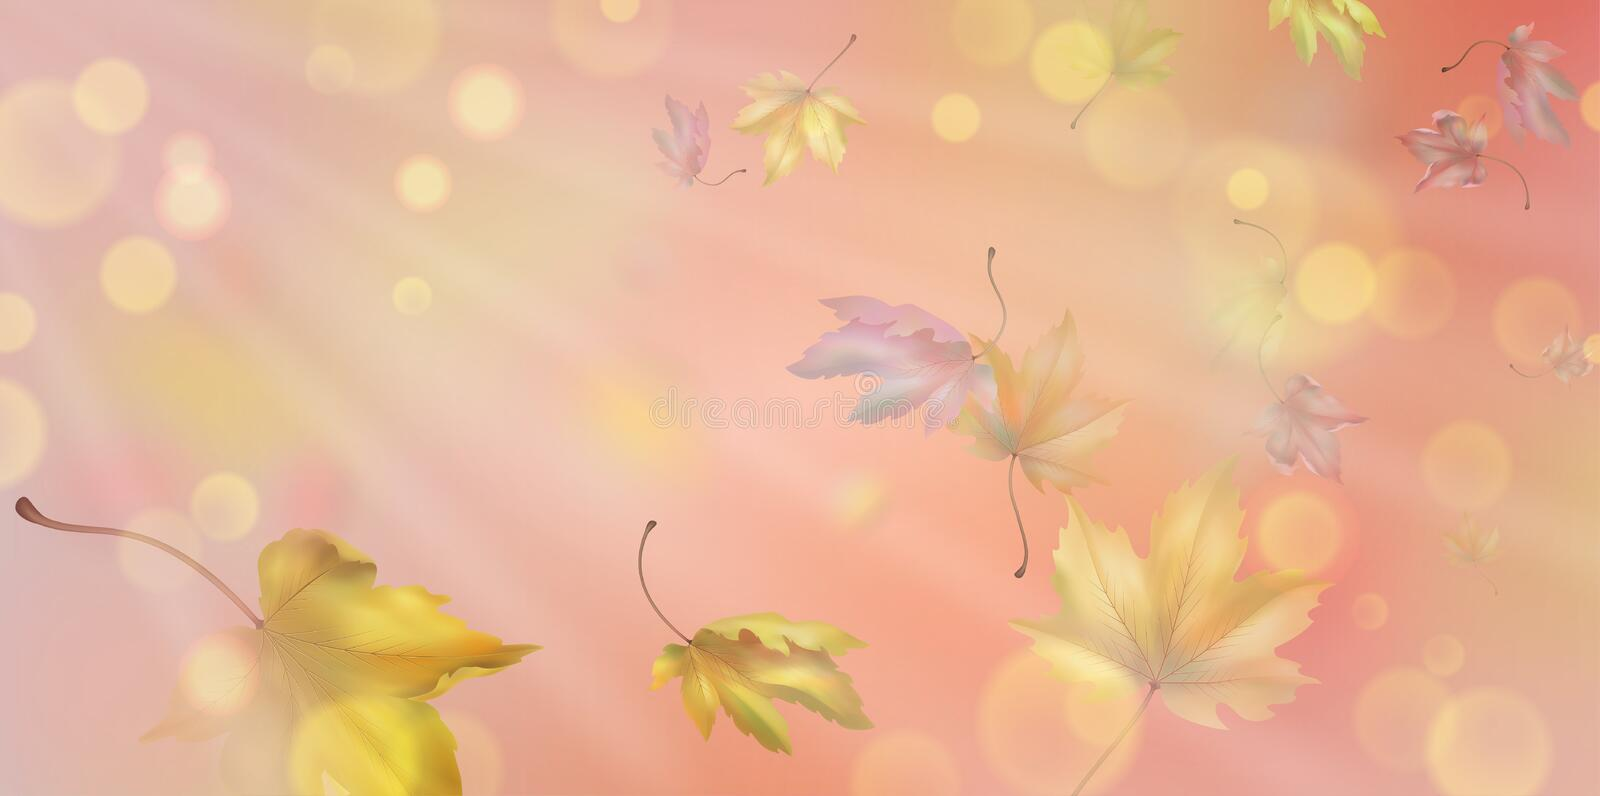 Falling Autumn Leaves. Autumn abstract background with falling maple leaves vector illustration